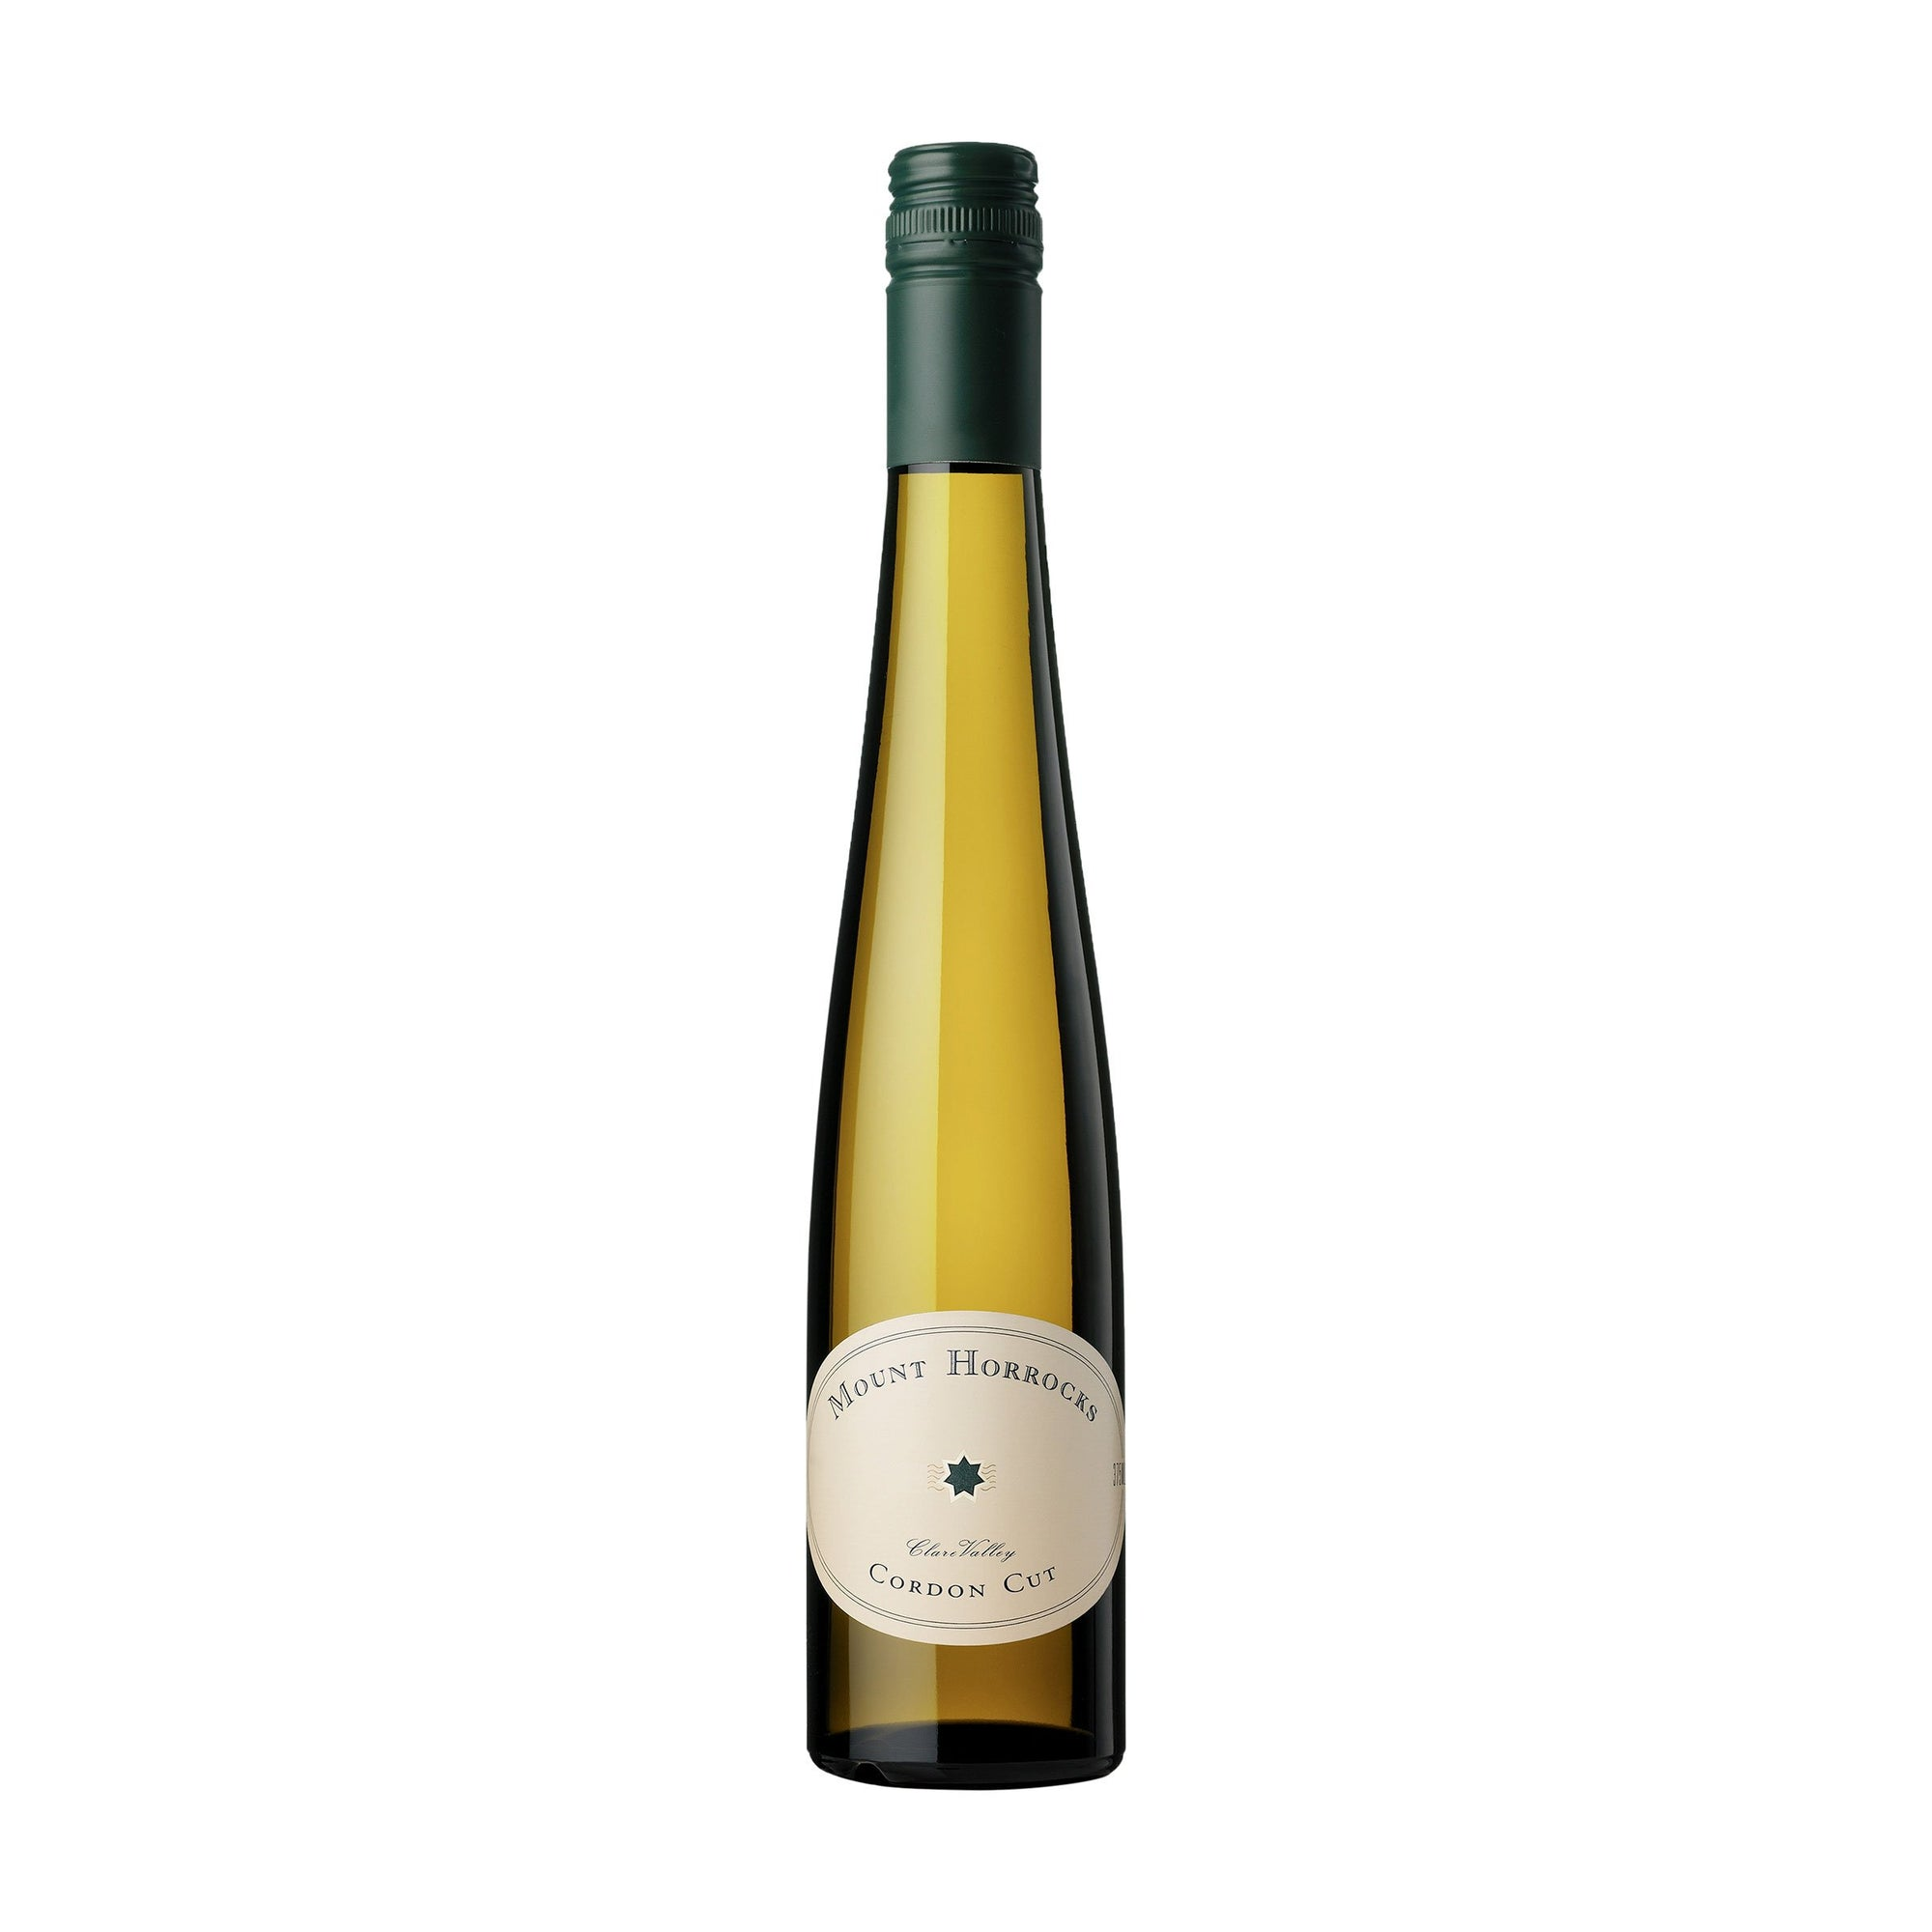 Sweet Wine Mount Horrocks Cordon Cut Riesling 2018 (Half Bottle) (4400196583447)